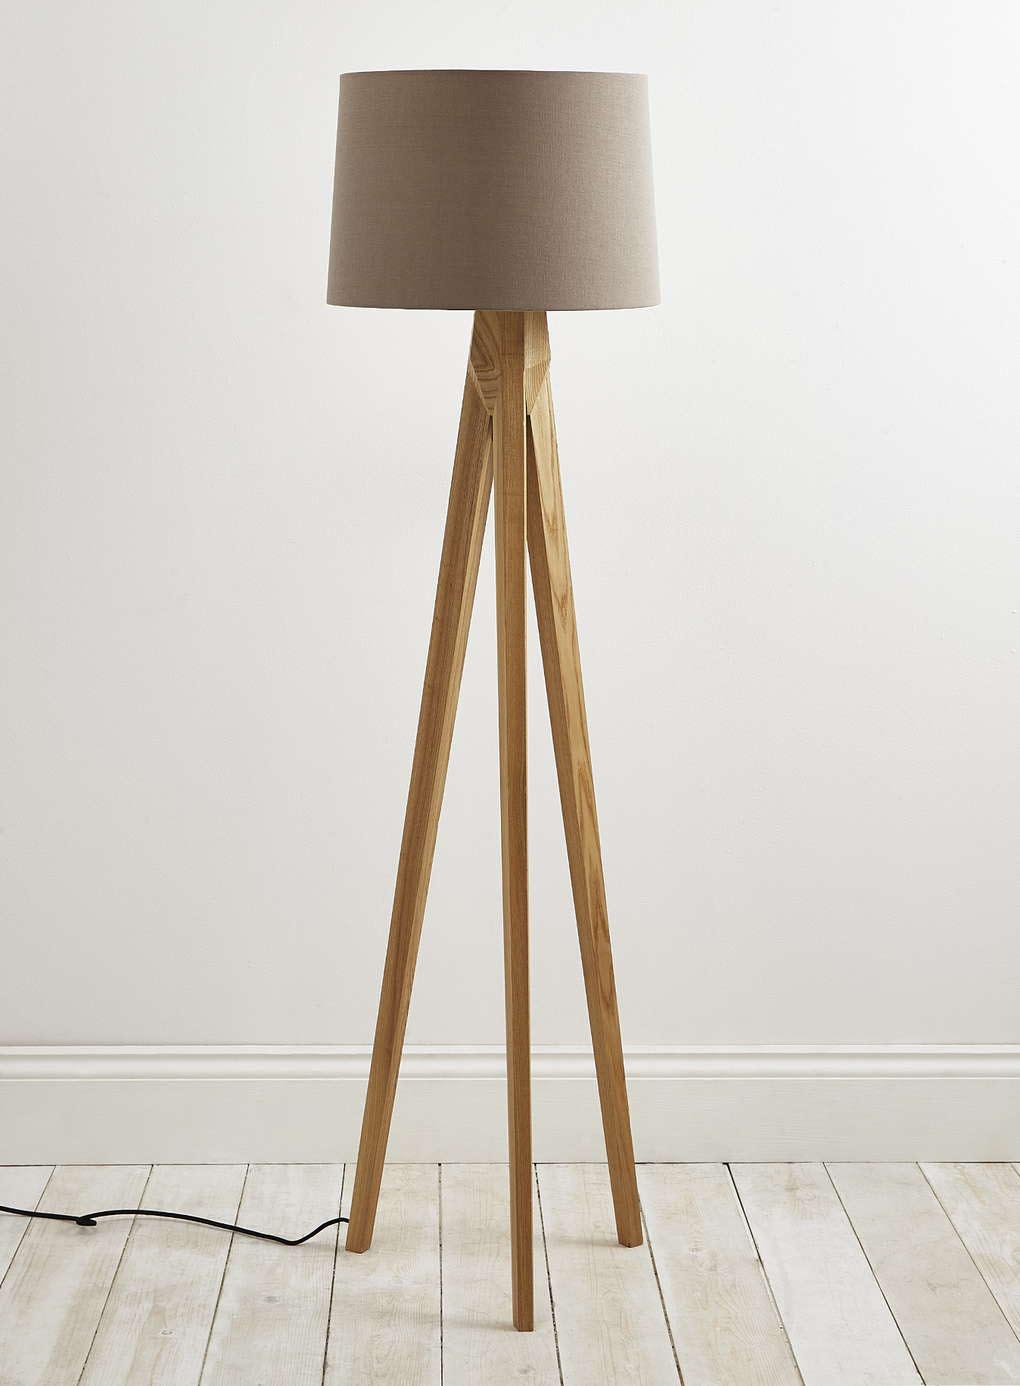 Tripod floor lamp wooden legs light fixtures design ideas for Make wooden floor lamp